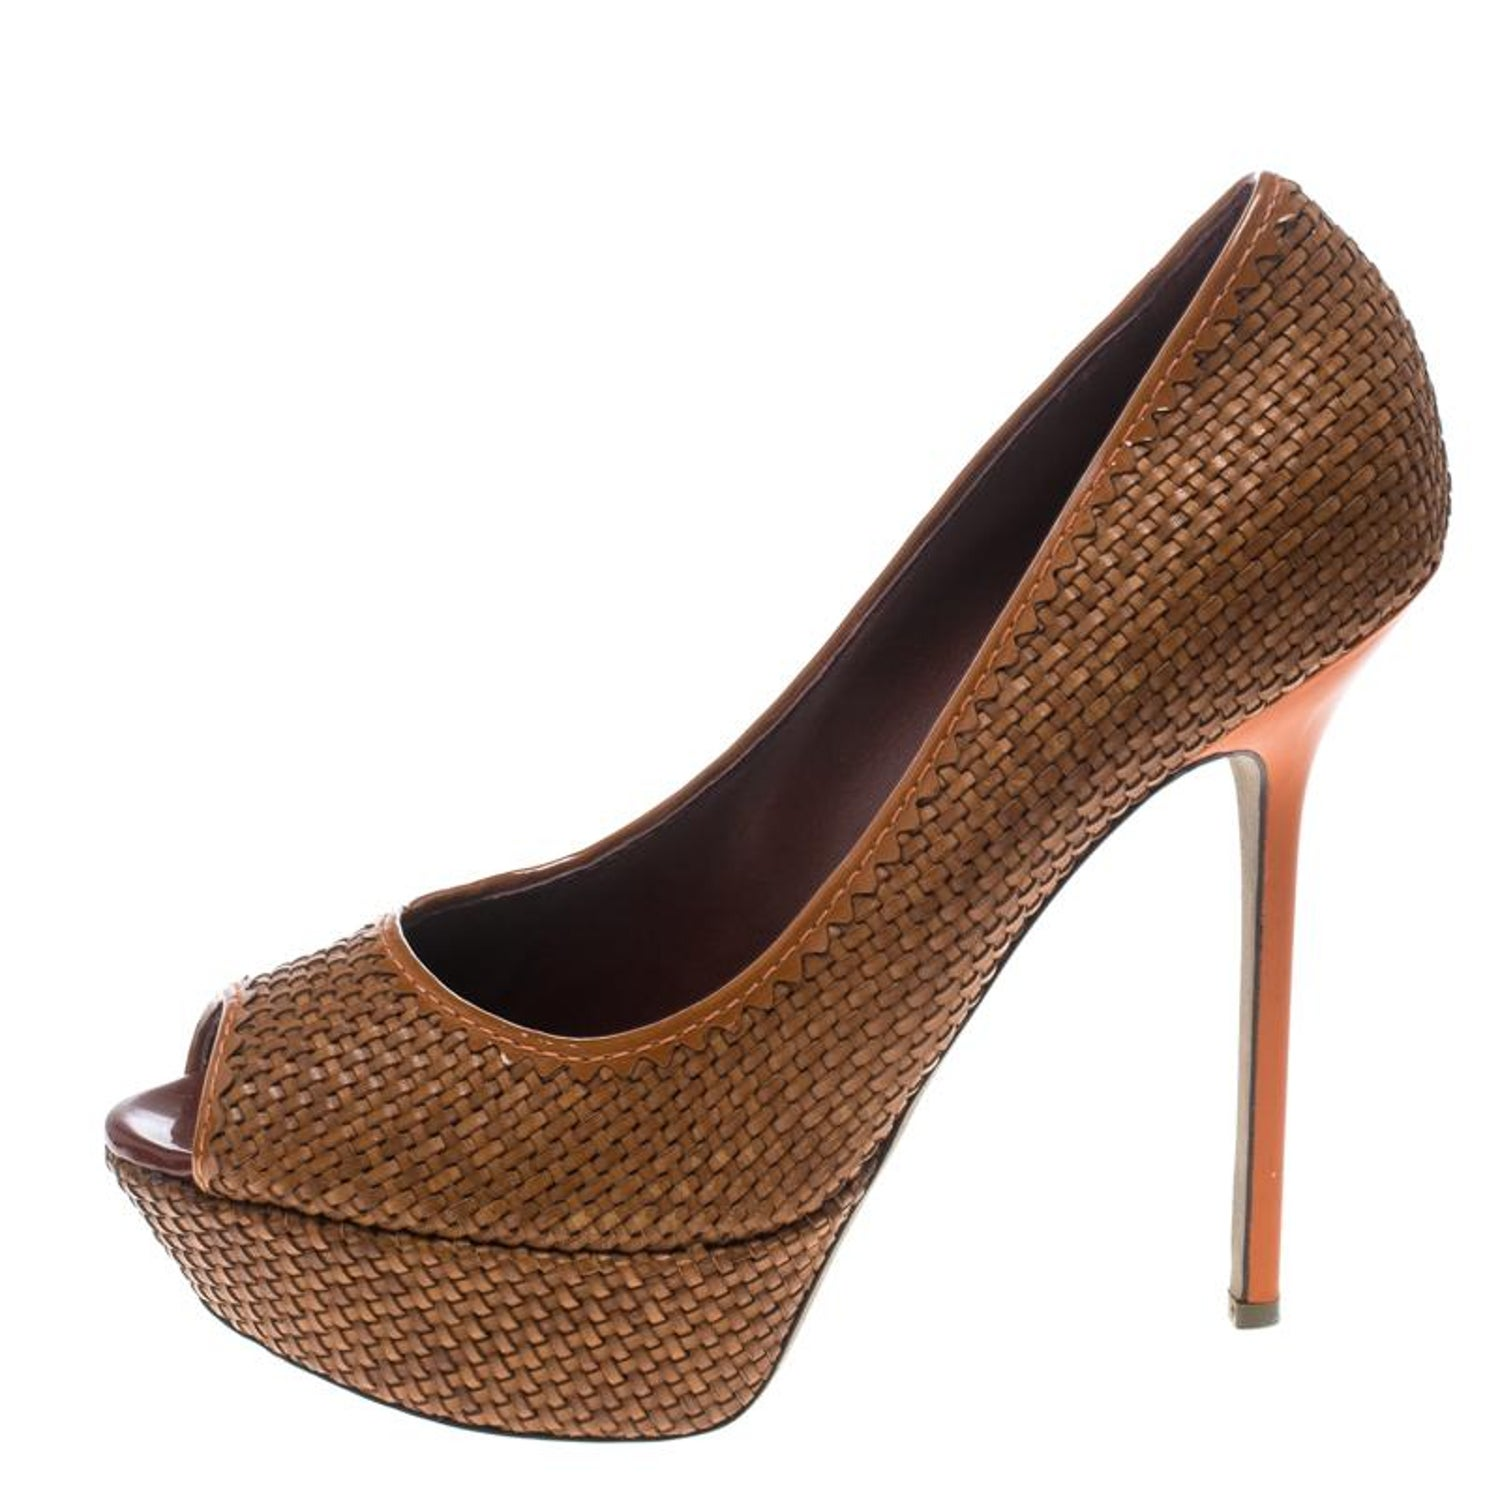 715ded1271a Sergio Rossi Brown Woven Leather Peep Toe Platform Pumps Size 41 For Sale  at 1stdibs